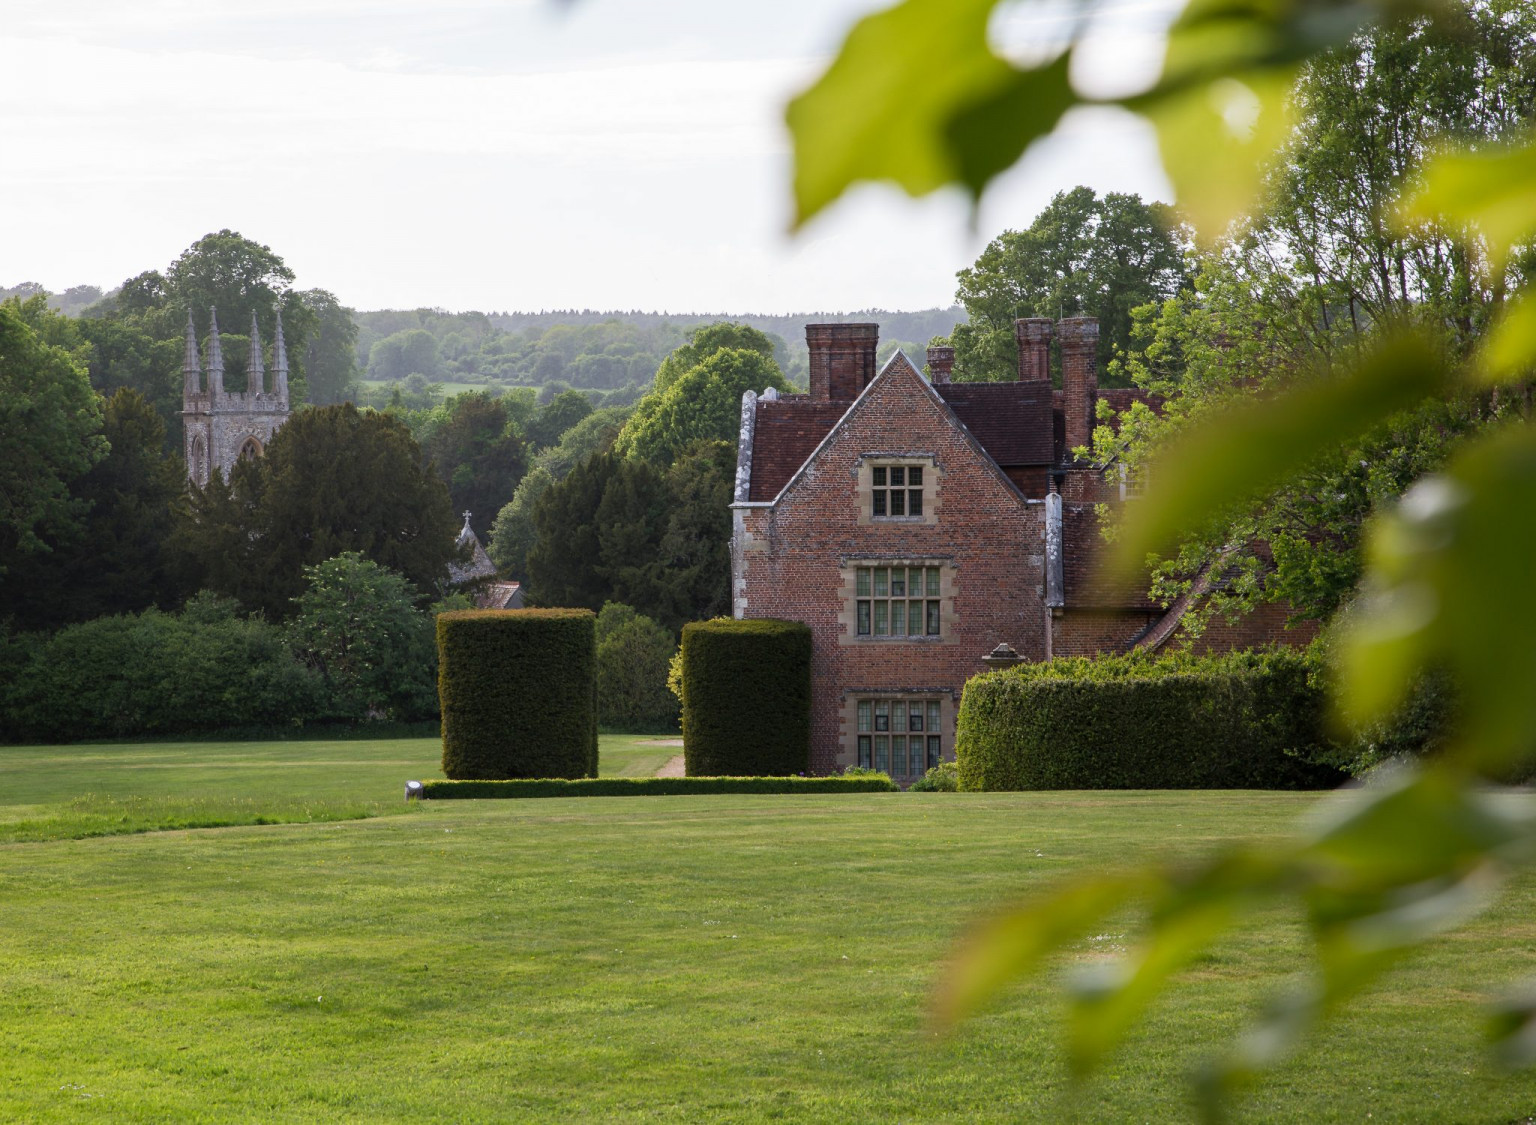 Chawton House, by Claire Lewis